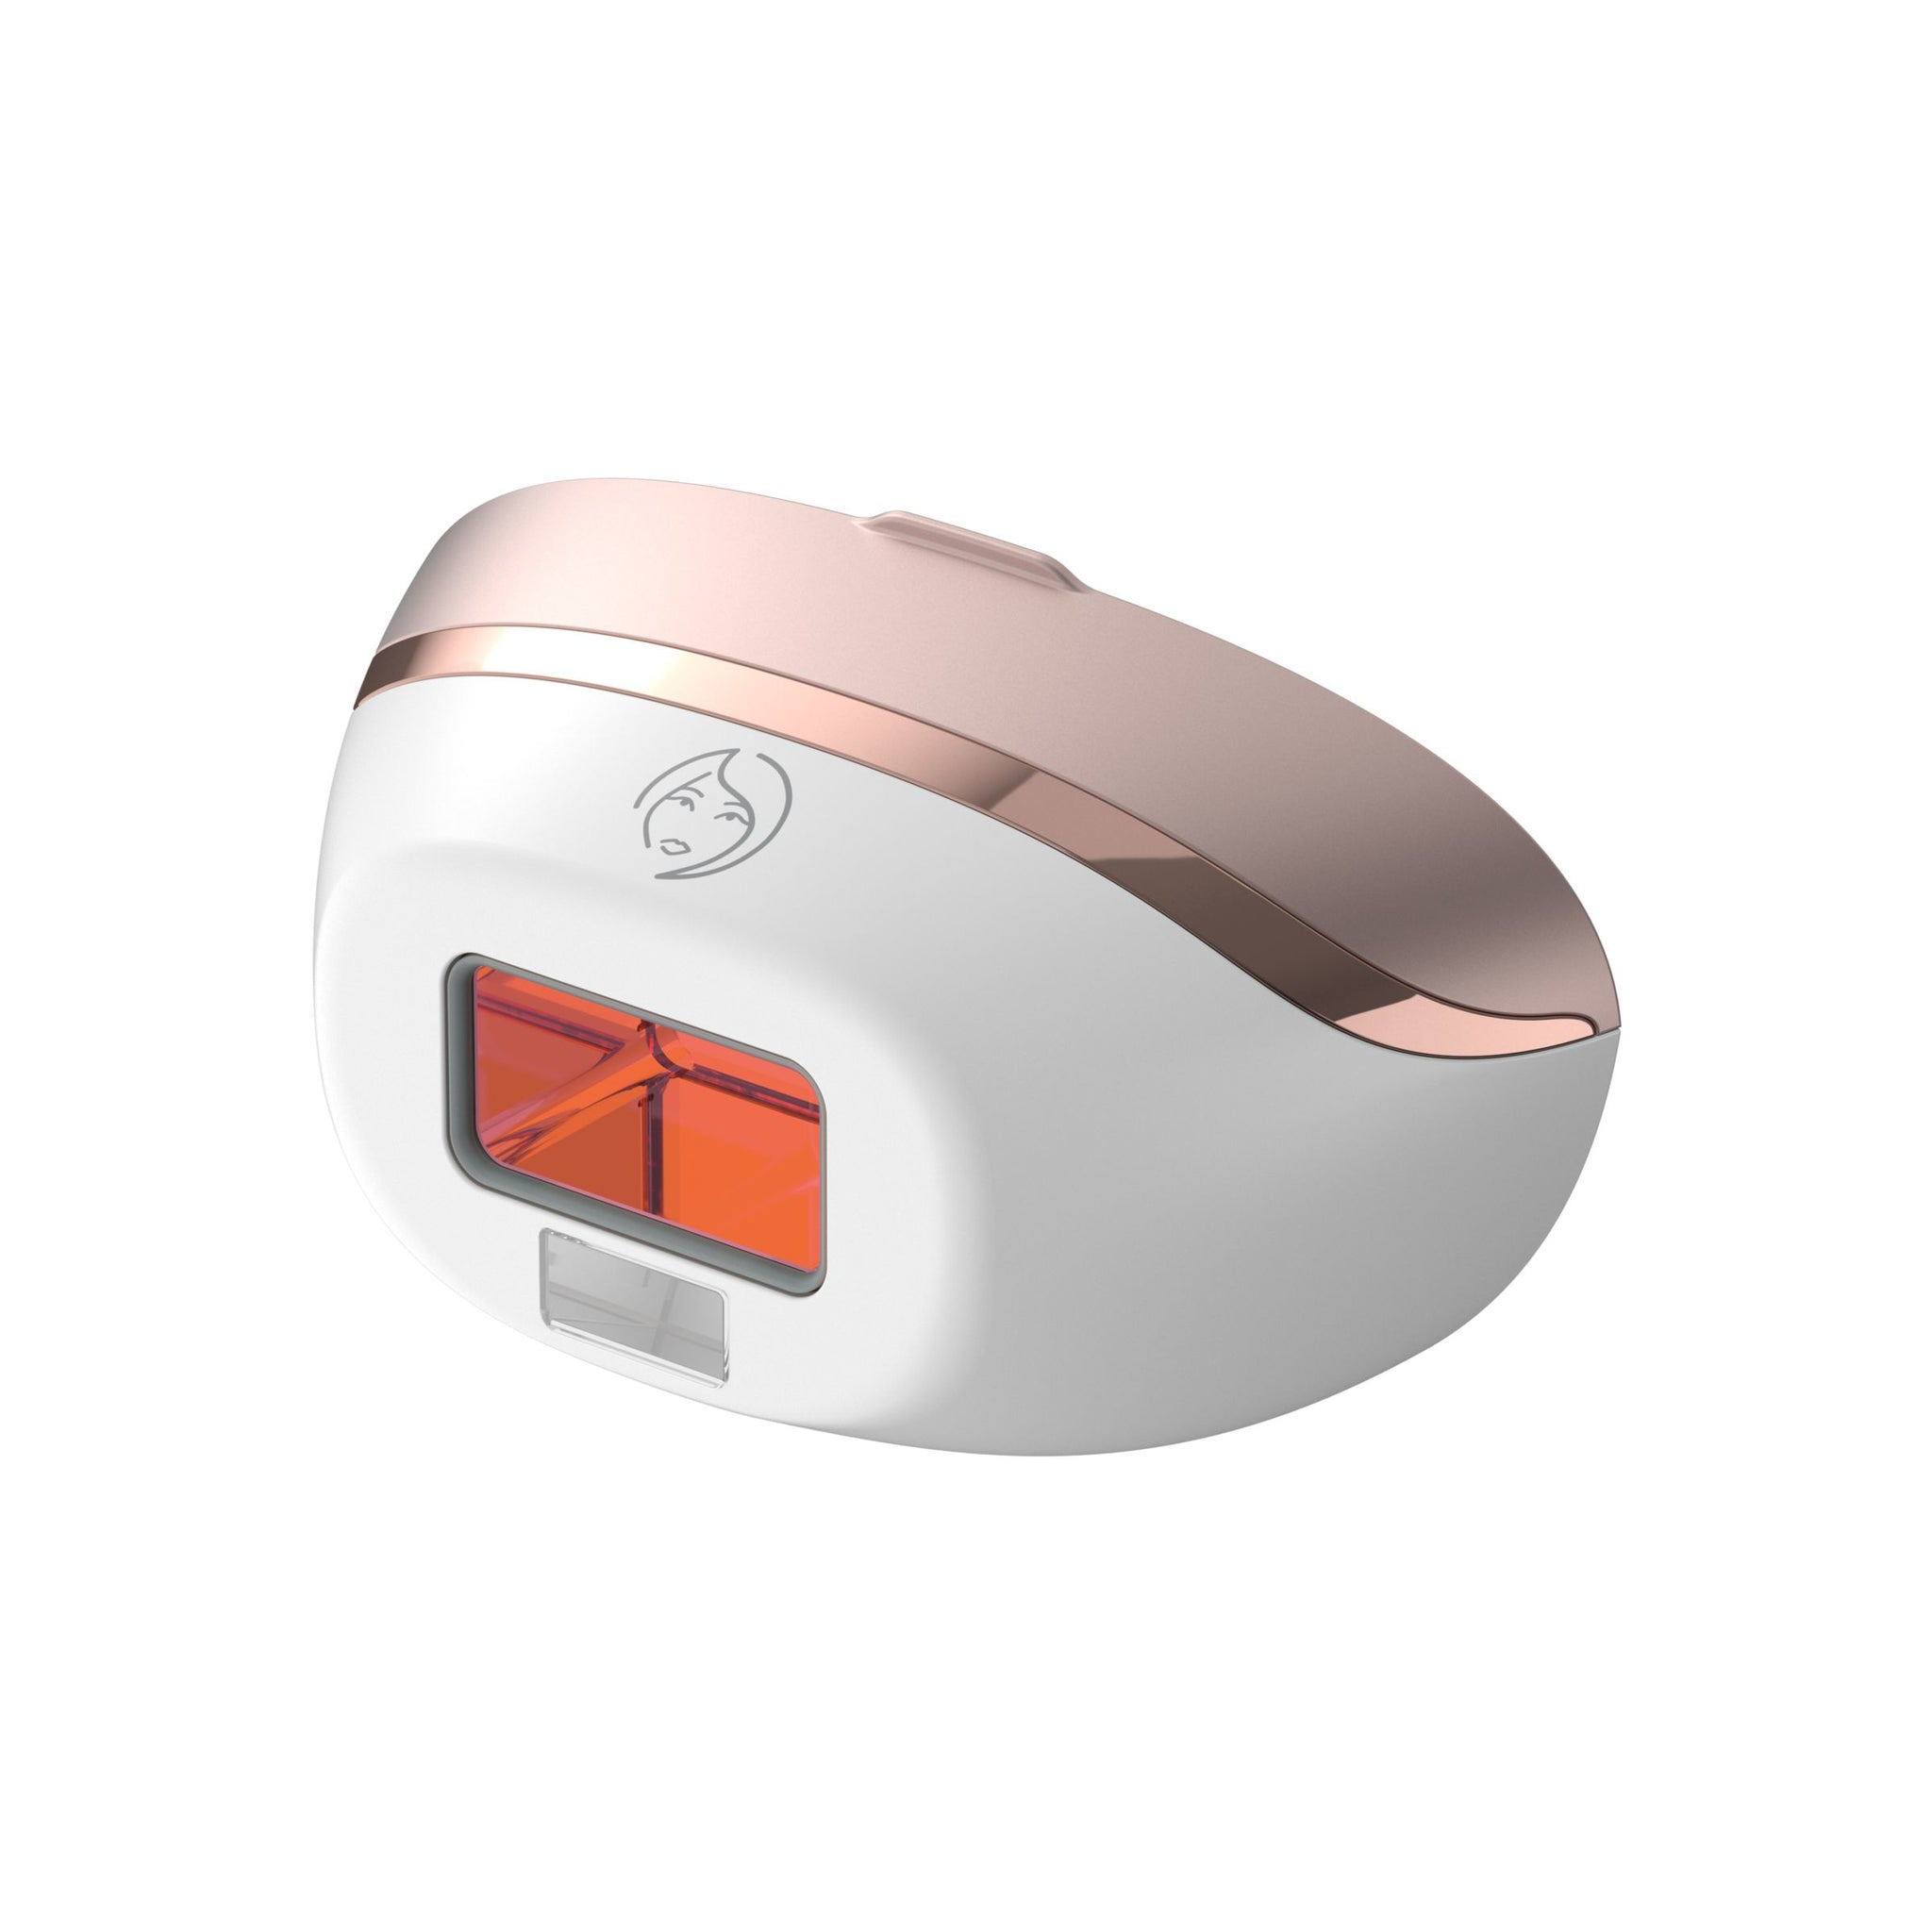 Philips BRI921/60 Lumea Advanced IPL - Hair Removal Device